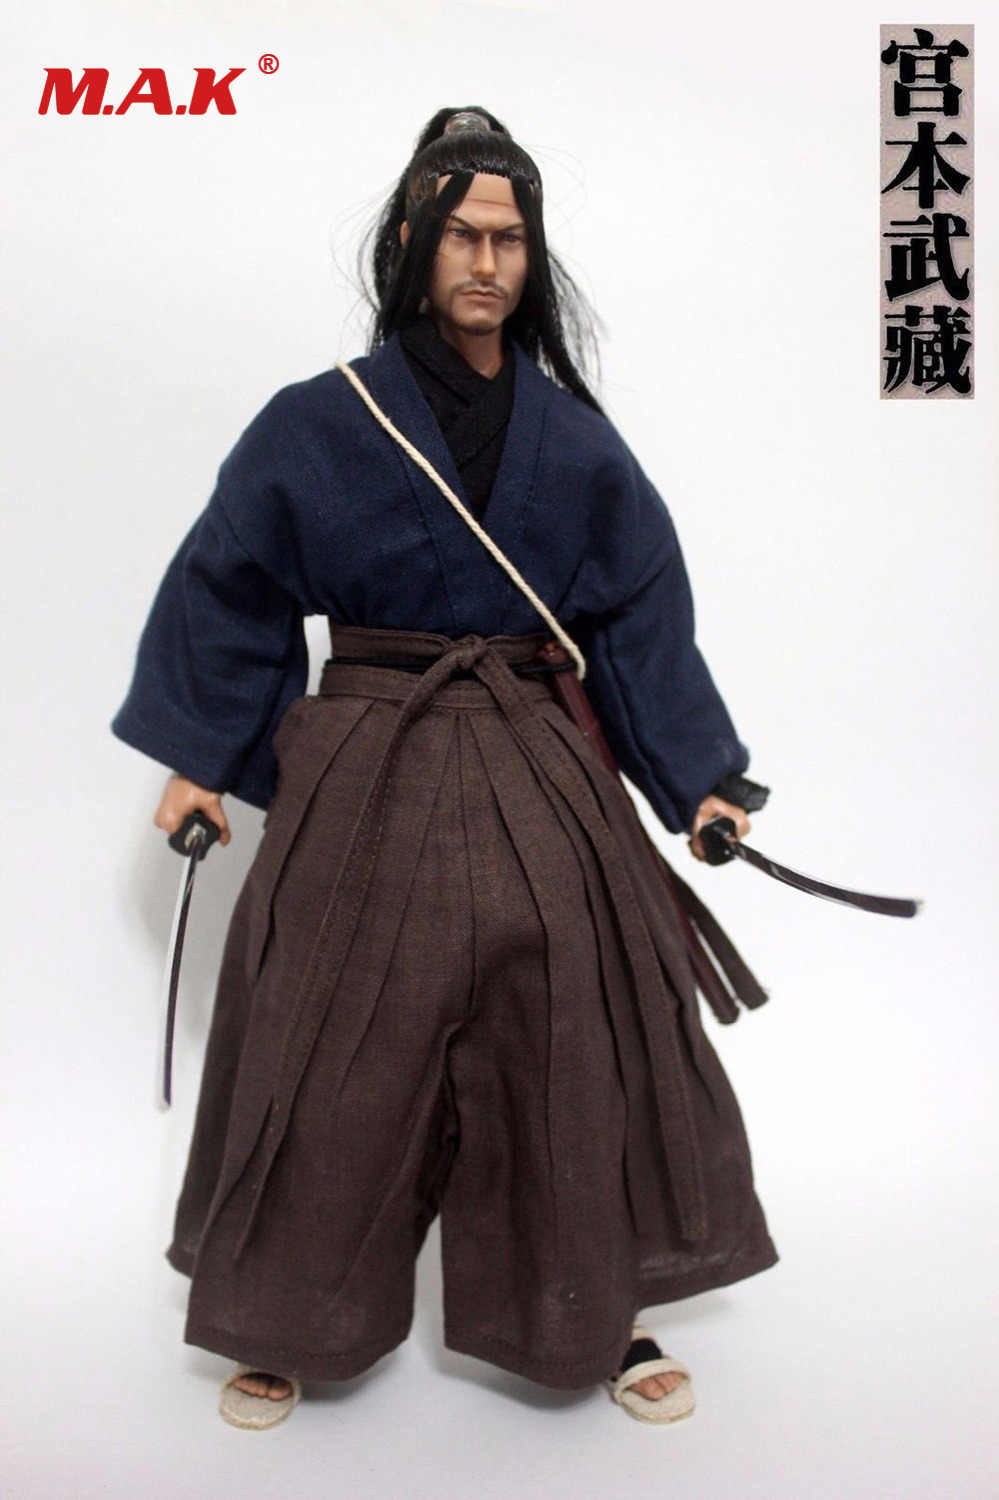 1 6 Scale Clothing Shinsen Gumi Samurai Clothes Set For 12 Action Figure Body Toys Hobbies Military Adventure